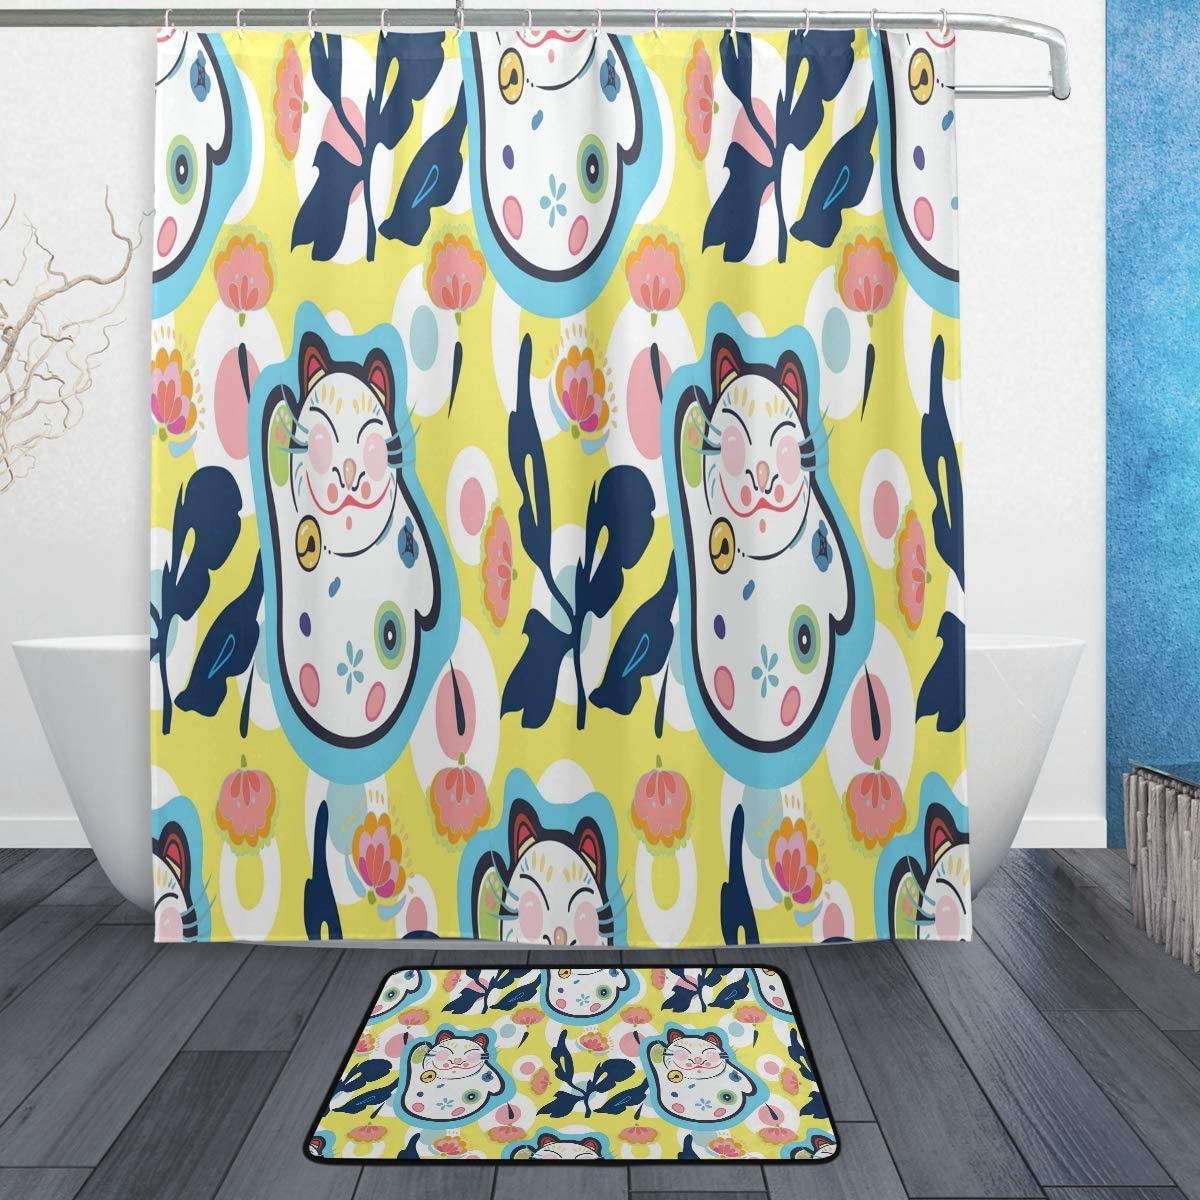 Details about  /Japanese Lucky Cat Shower Curtain Bathroom Decor Fabric /& 12hooks 71 Inch